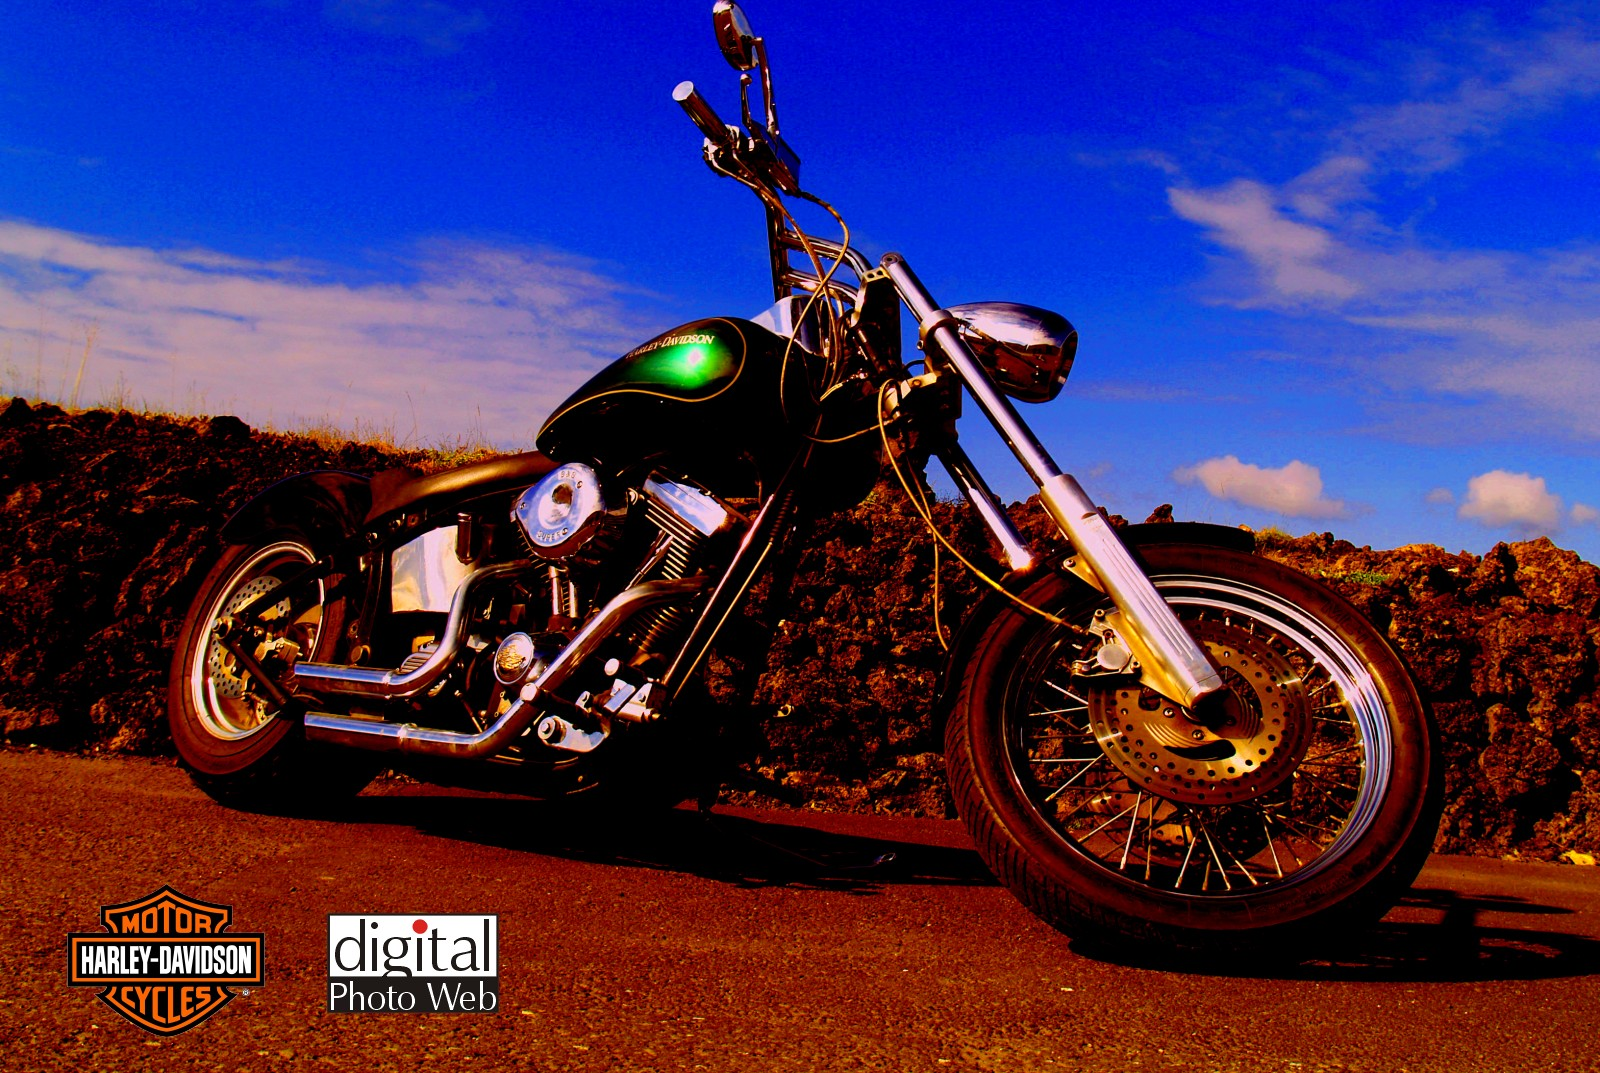 1000 Harley Davidson Wallpaper Harley Davidson Wallpaper Collection 1600x1073